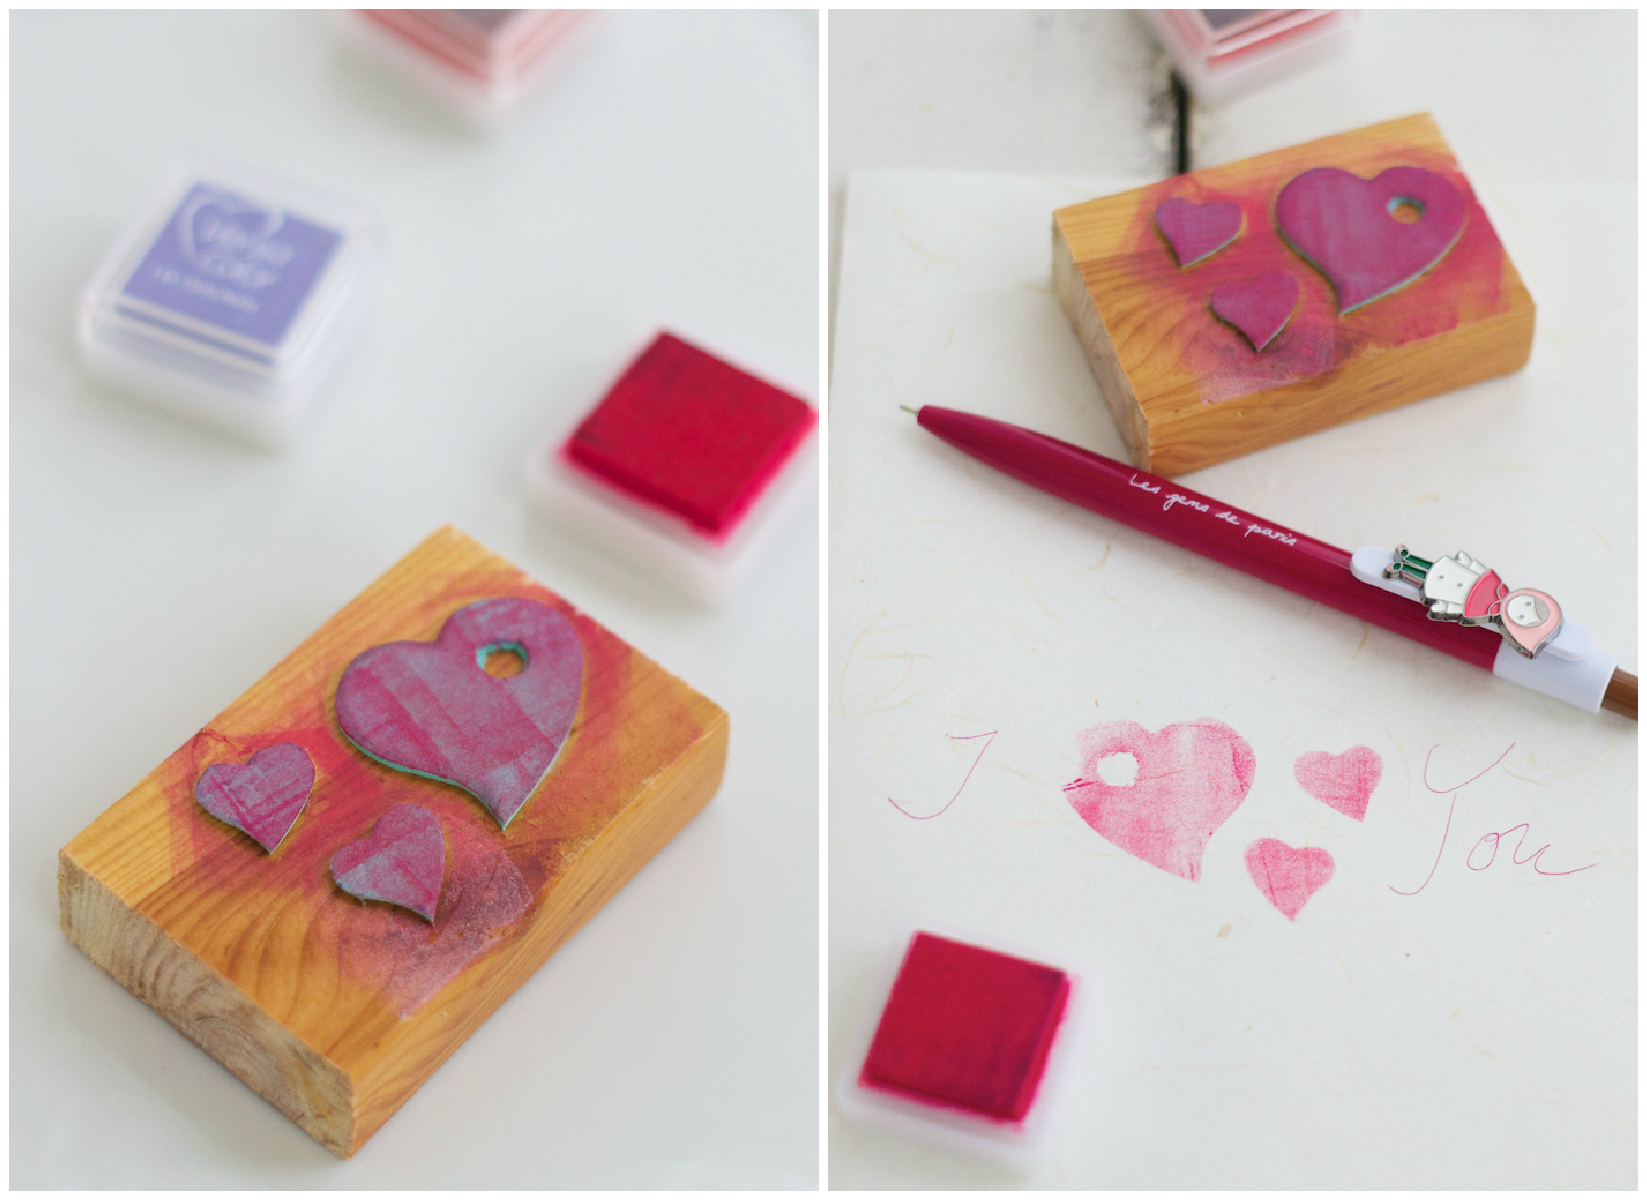 my first handcrafted stamp - a heart